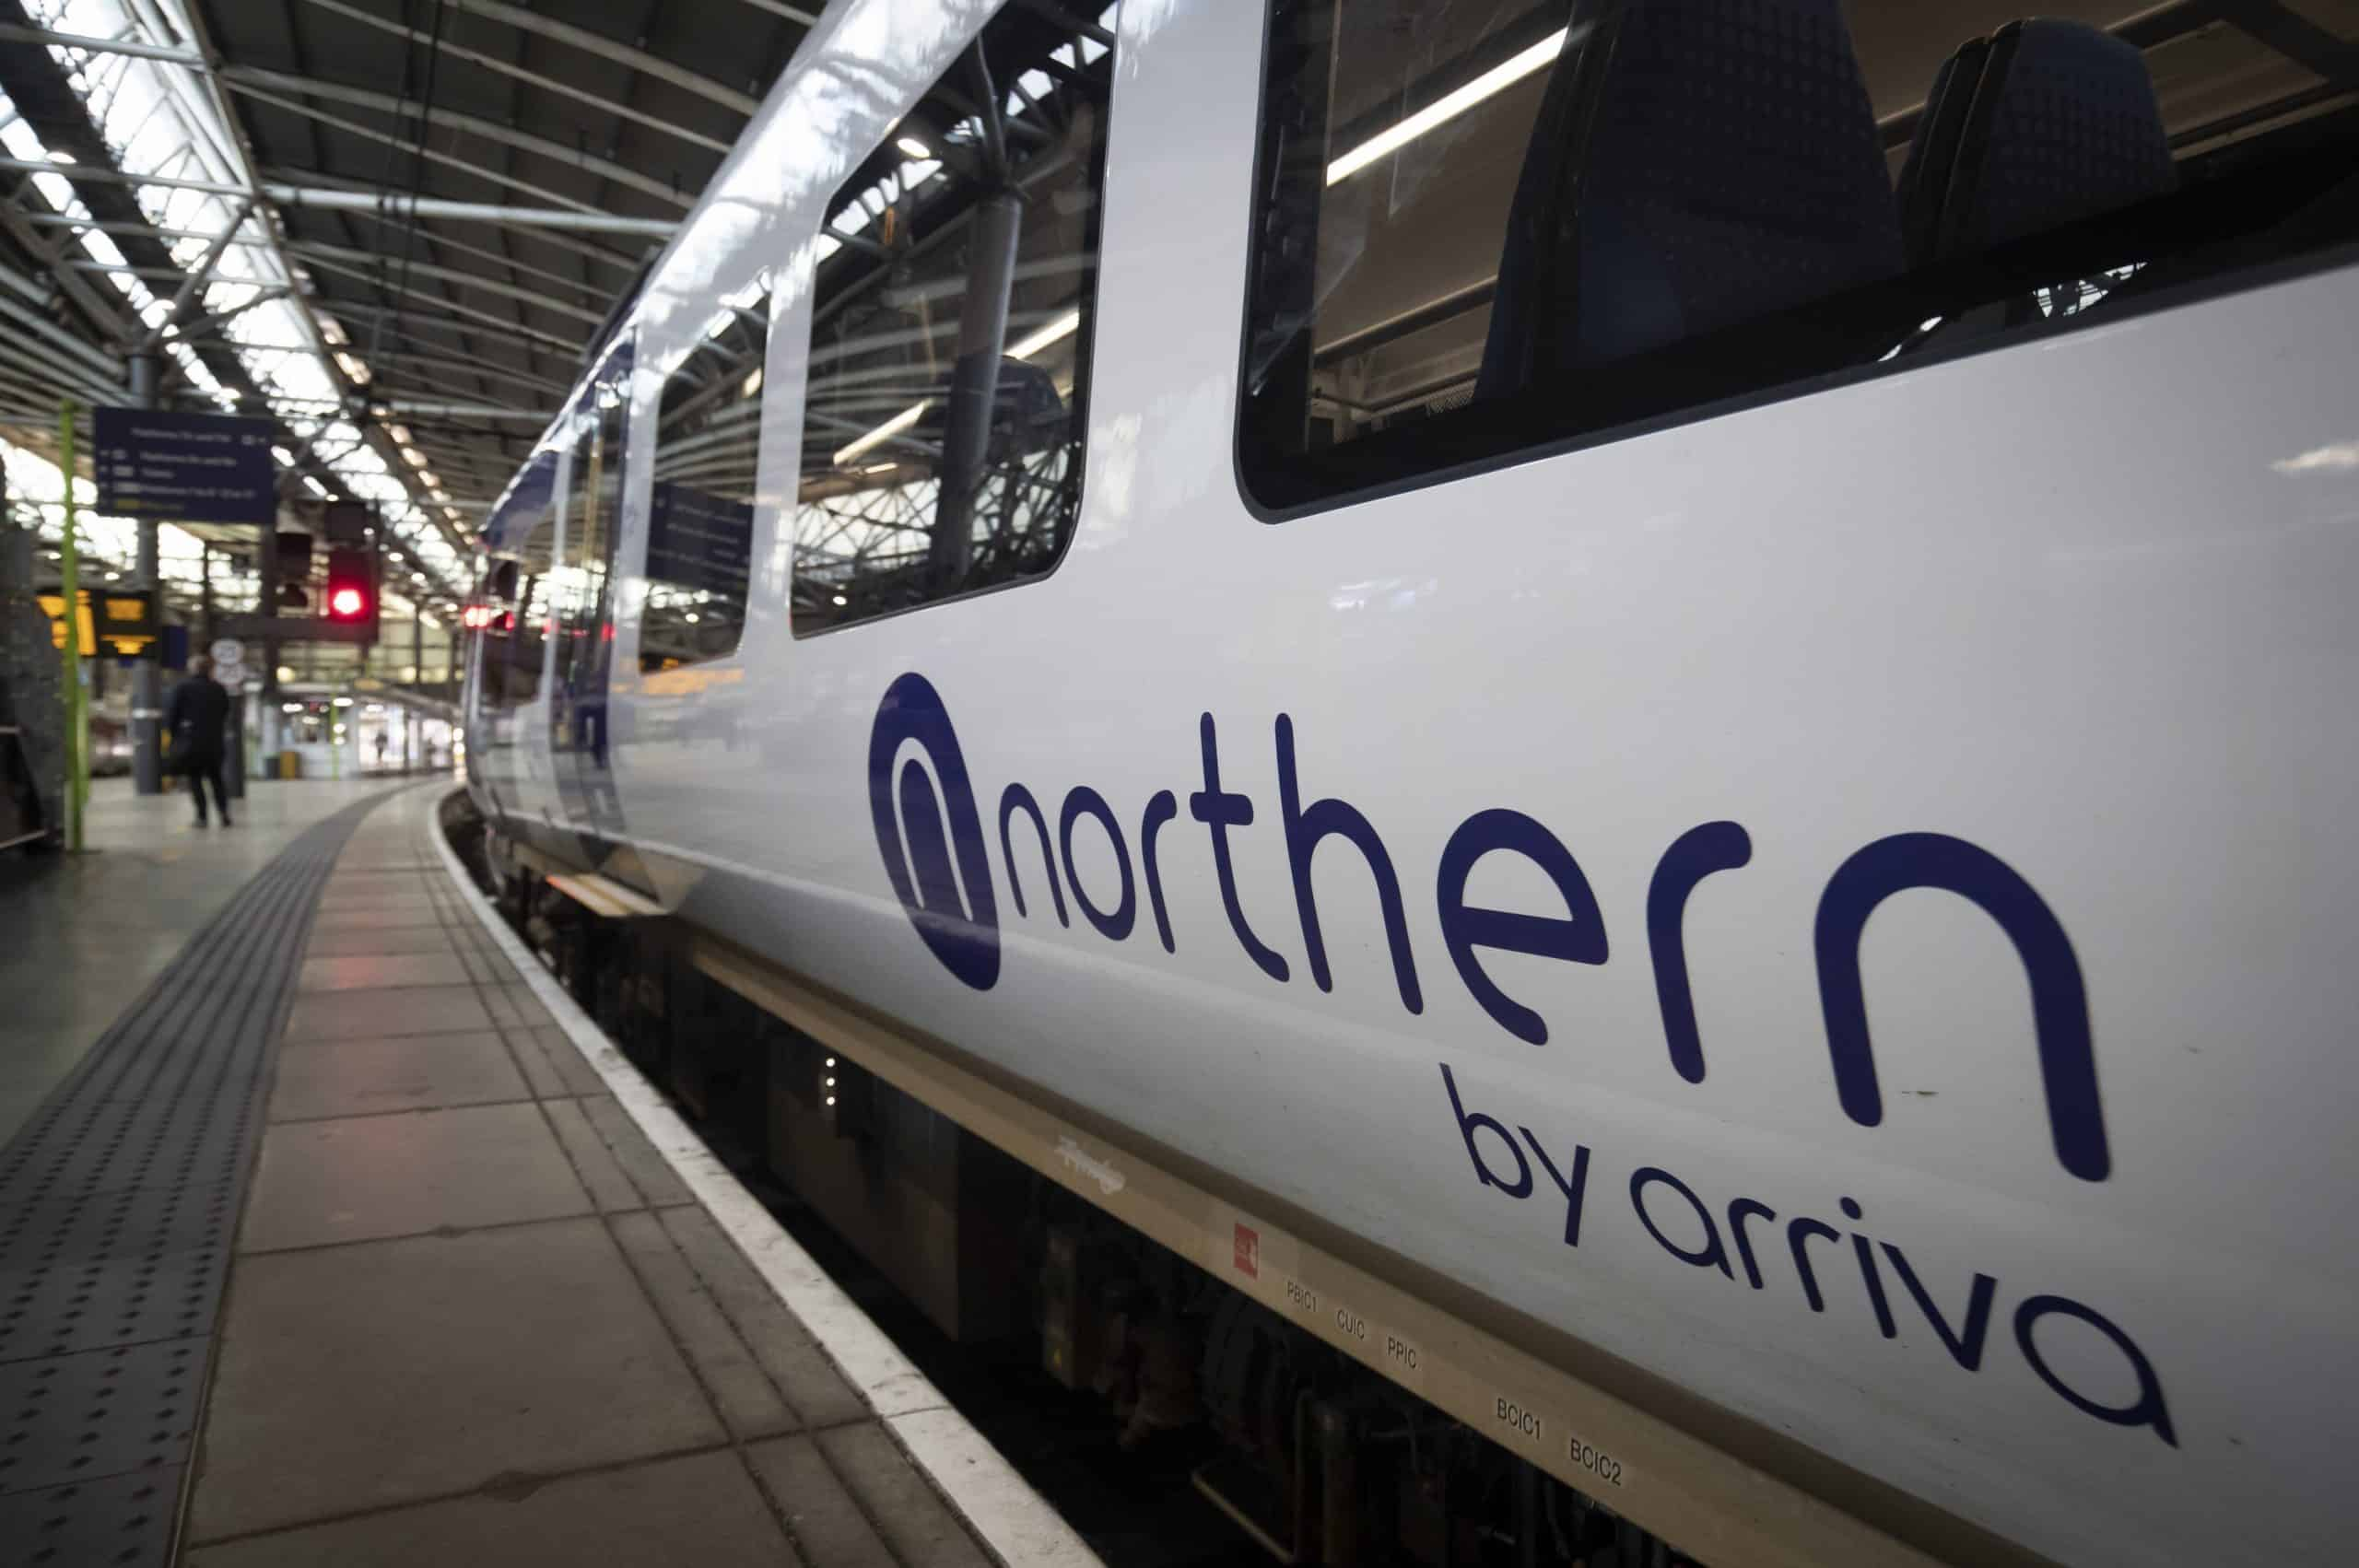 Government takes over Northern franchise after widespread criticism